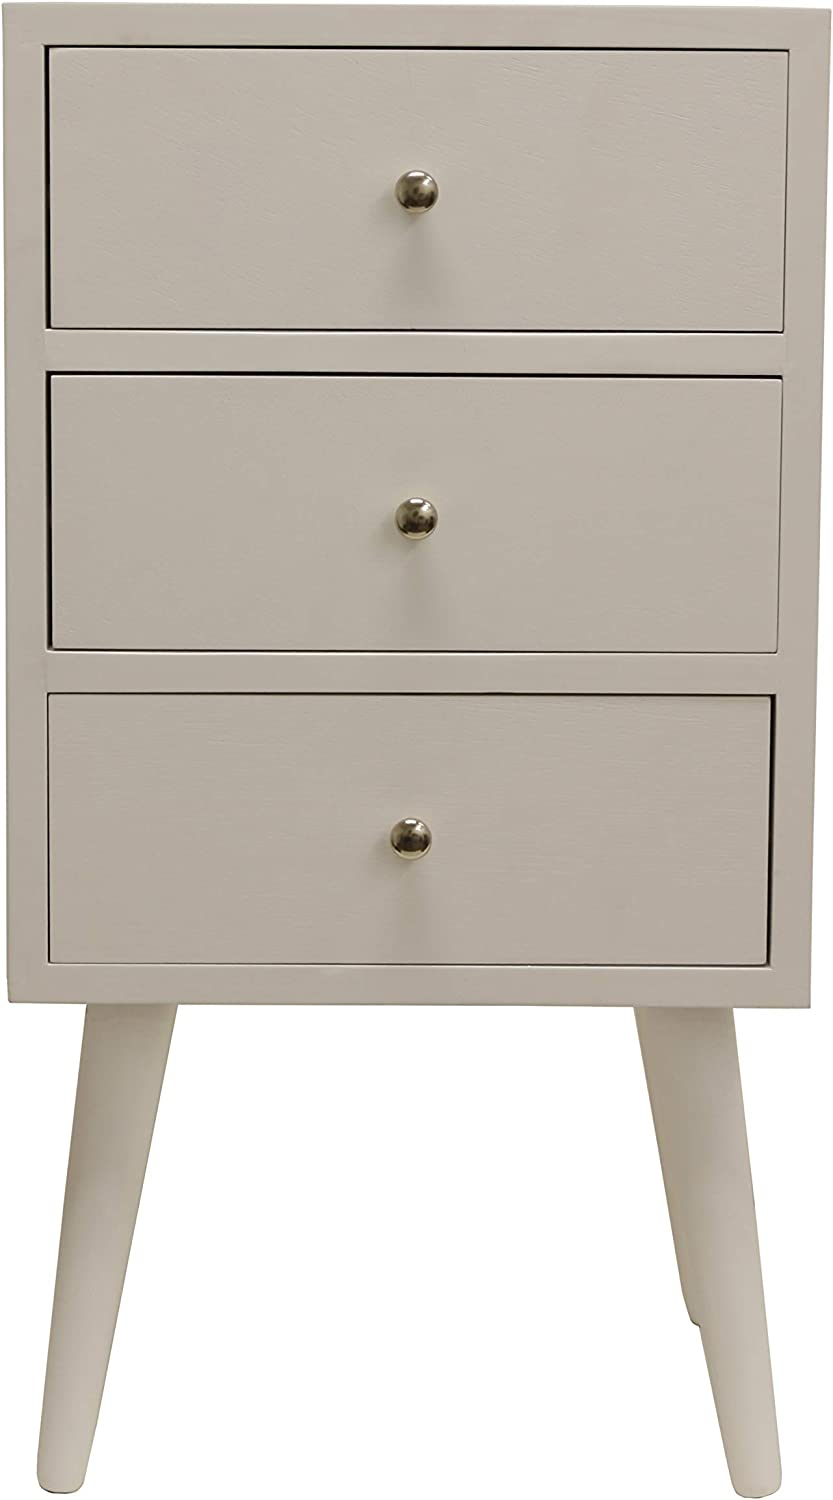 Decor Therapy FR8614 Side Table, Size: 15w 11.8d 27.5h, Gloss White